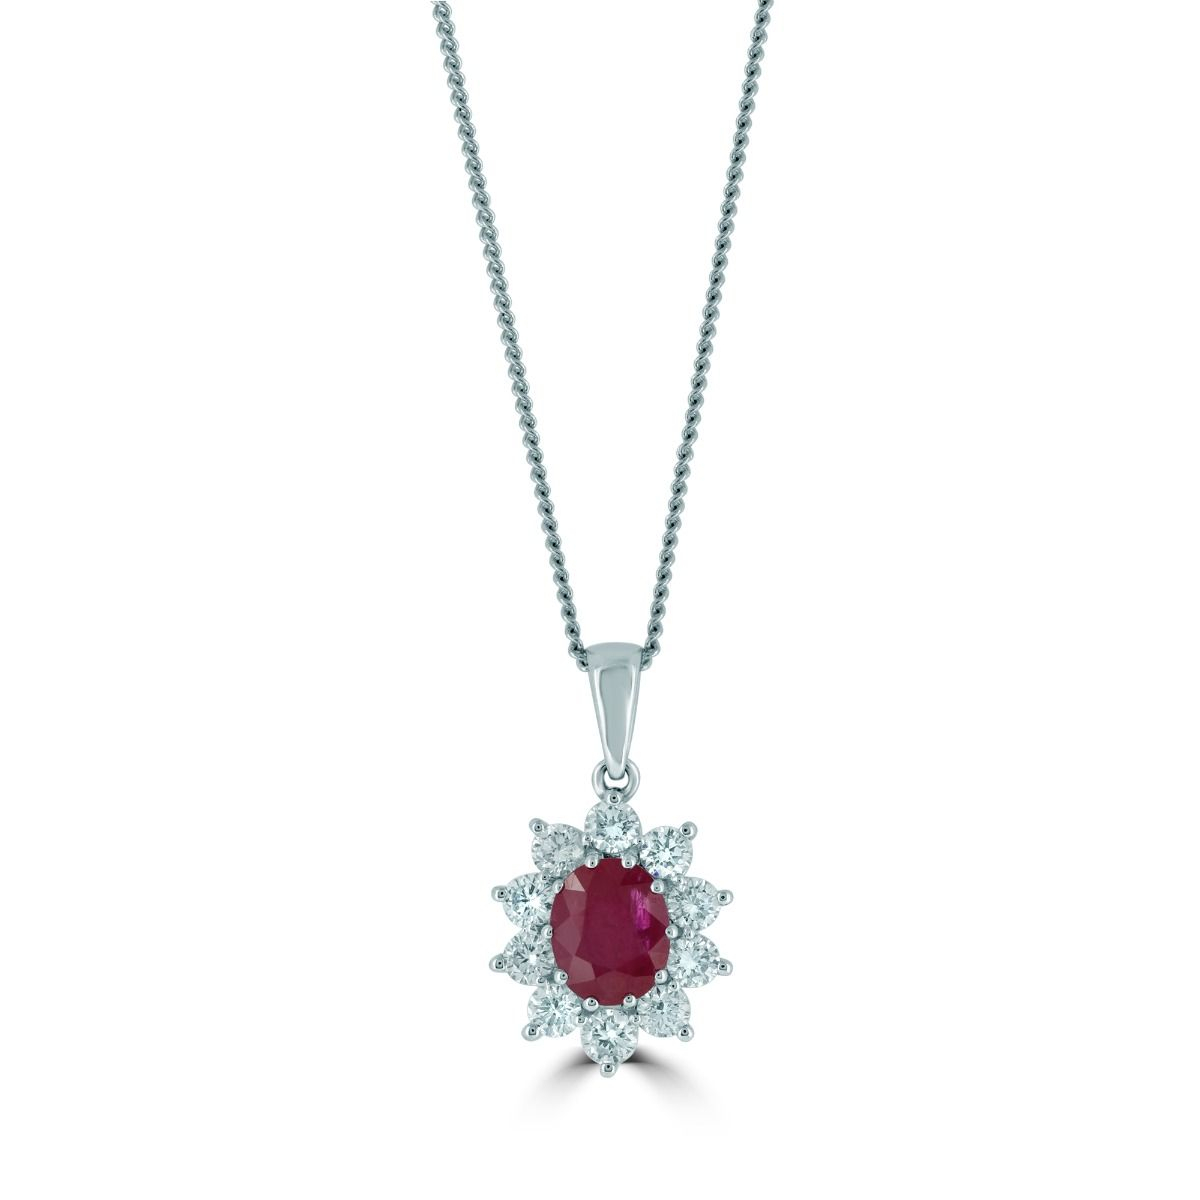 18ct White Gold Ruby And Diamond Cluster Necklace (chain Not Included) Regarding Recent Ruby And Diamond Cluster Necklaces (View 7 of 25)